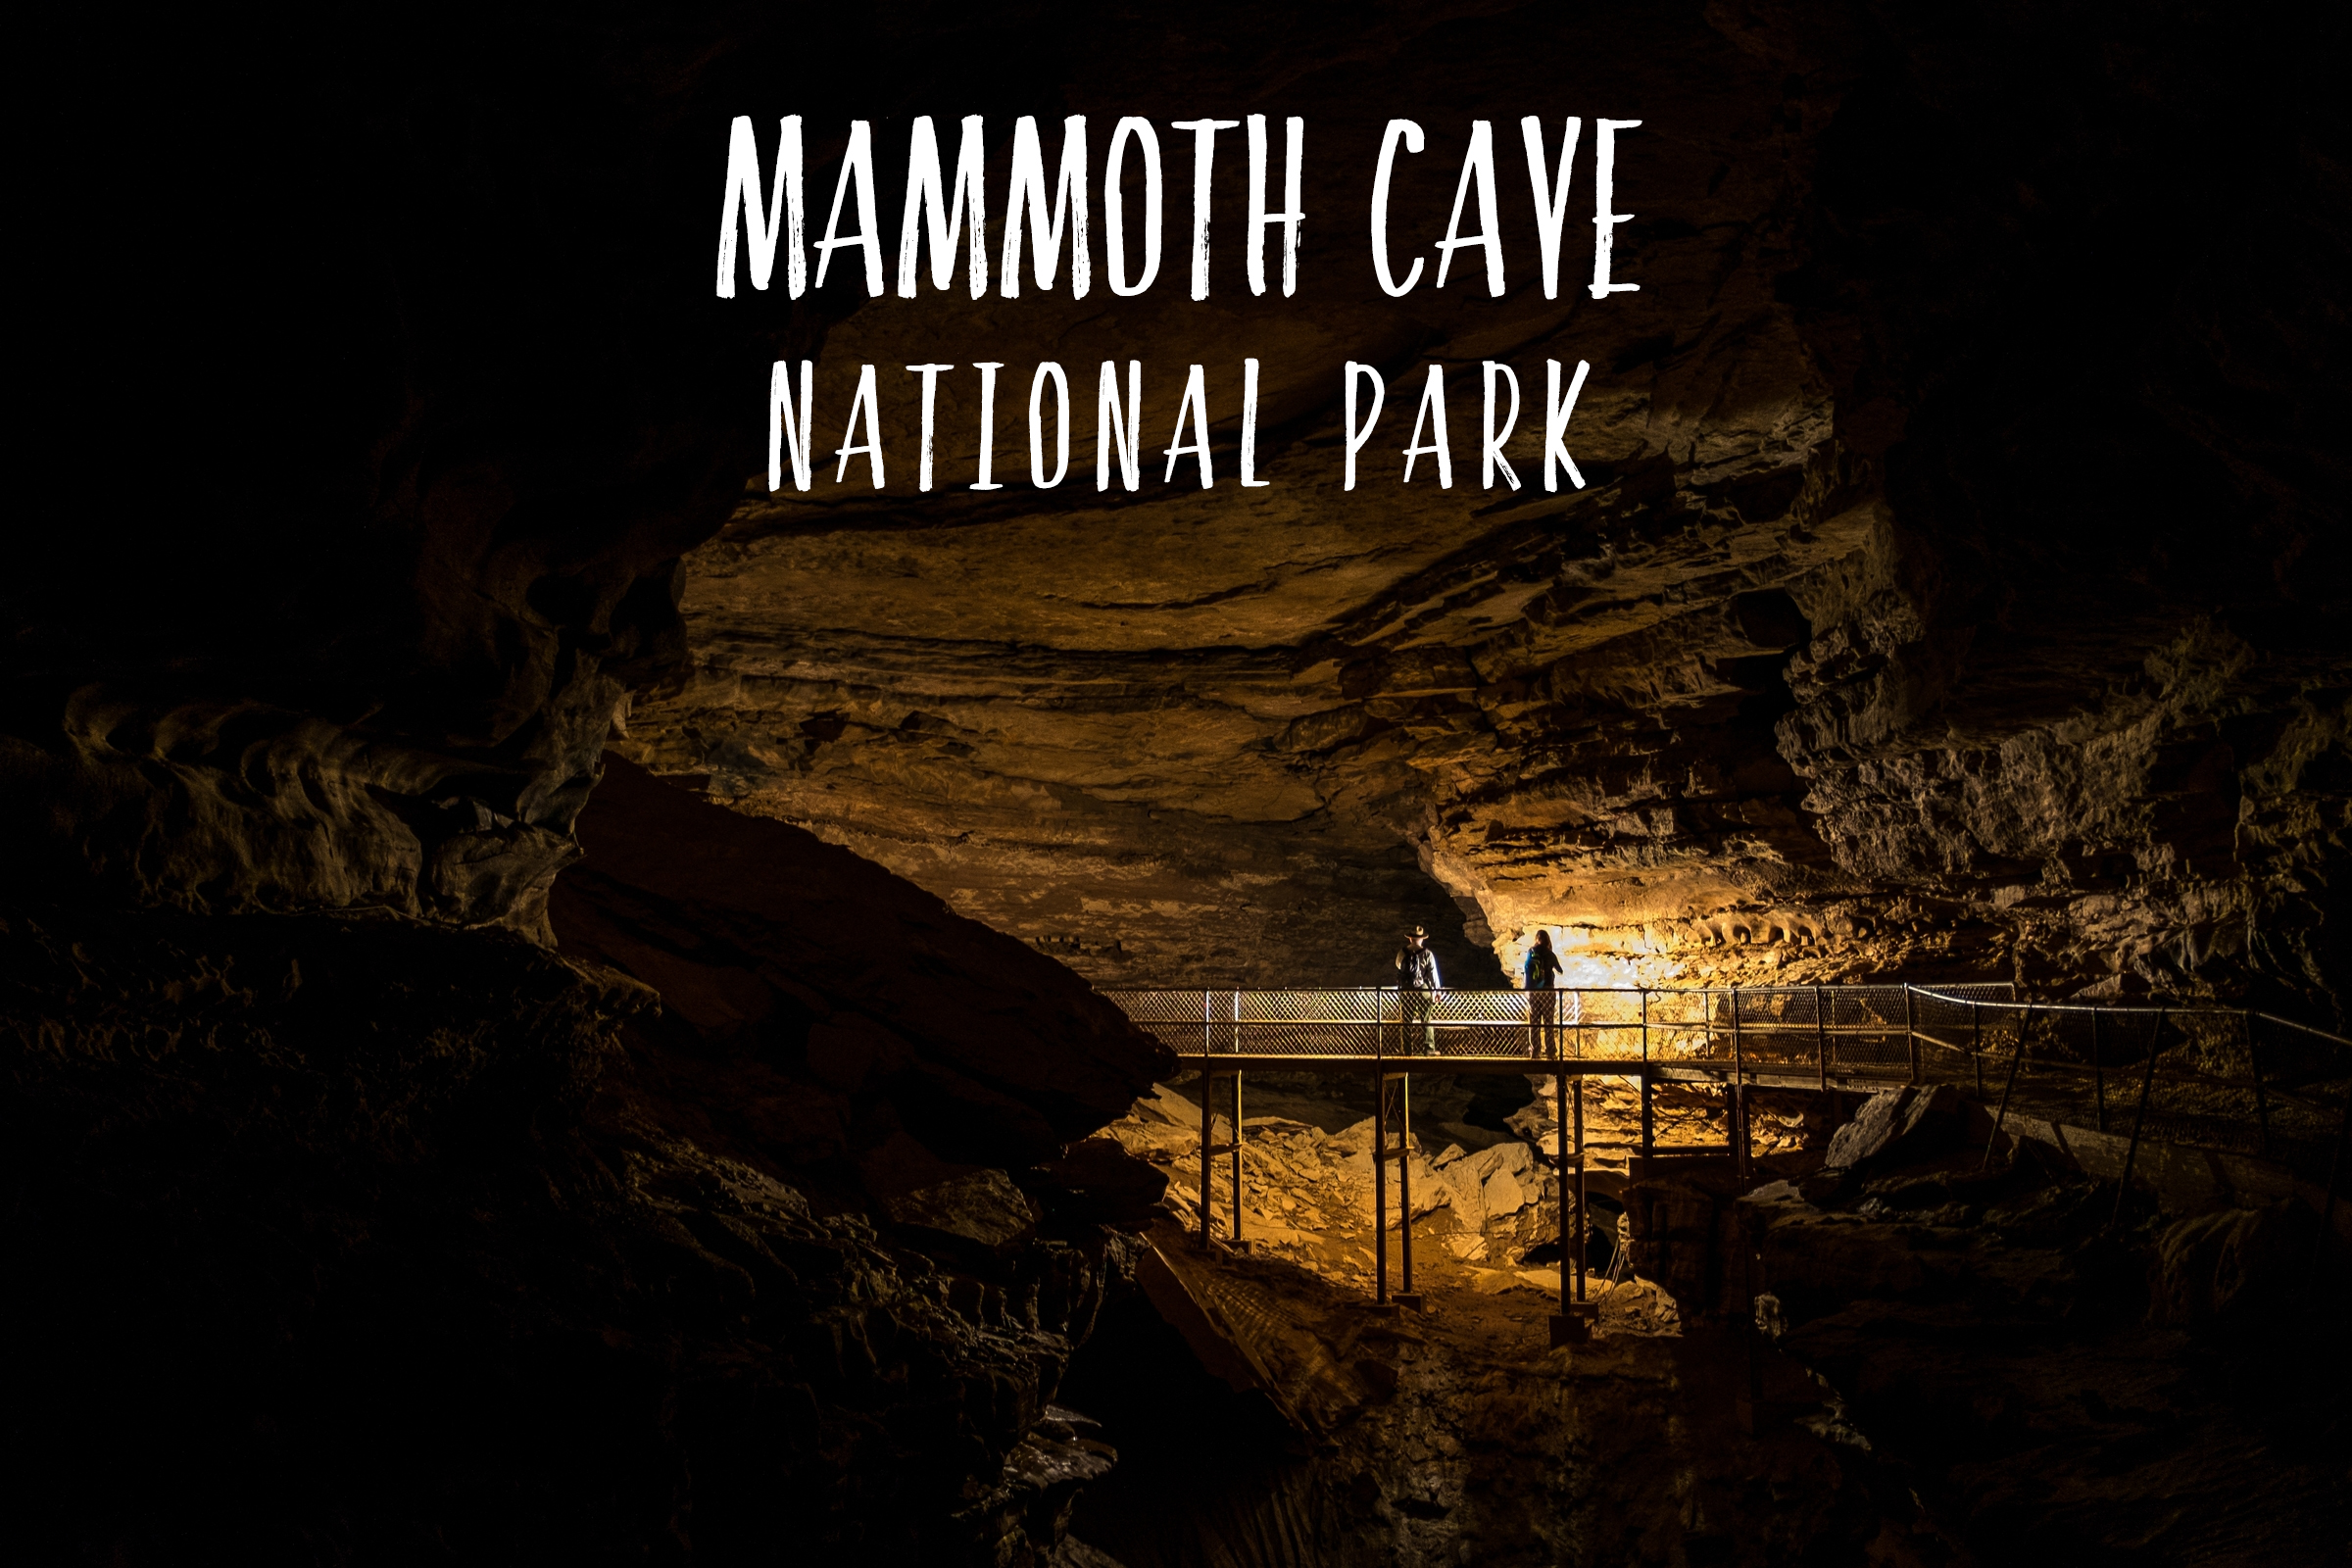 Mammoth Cave National Park | Park 6/59